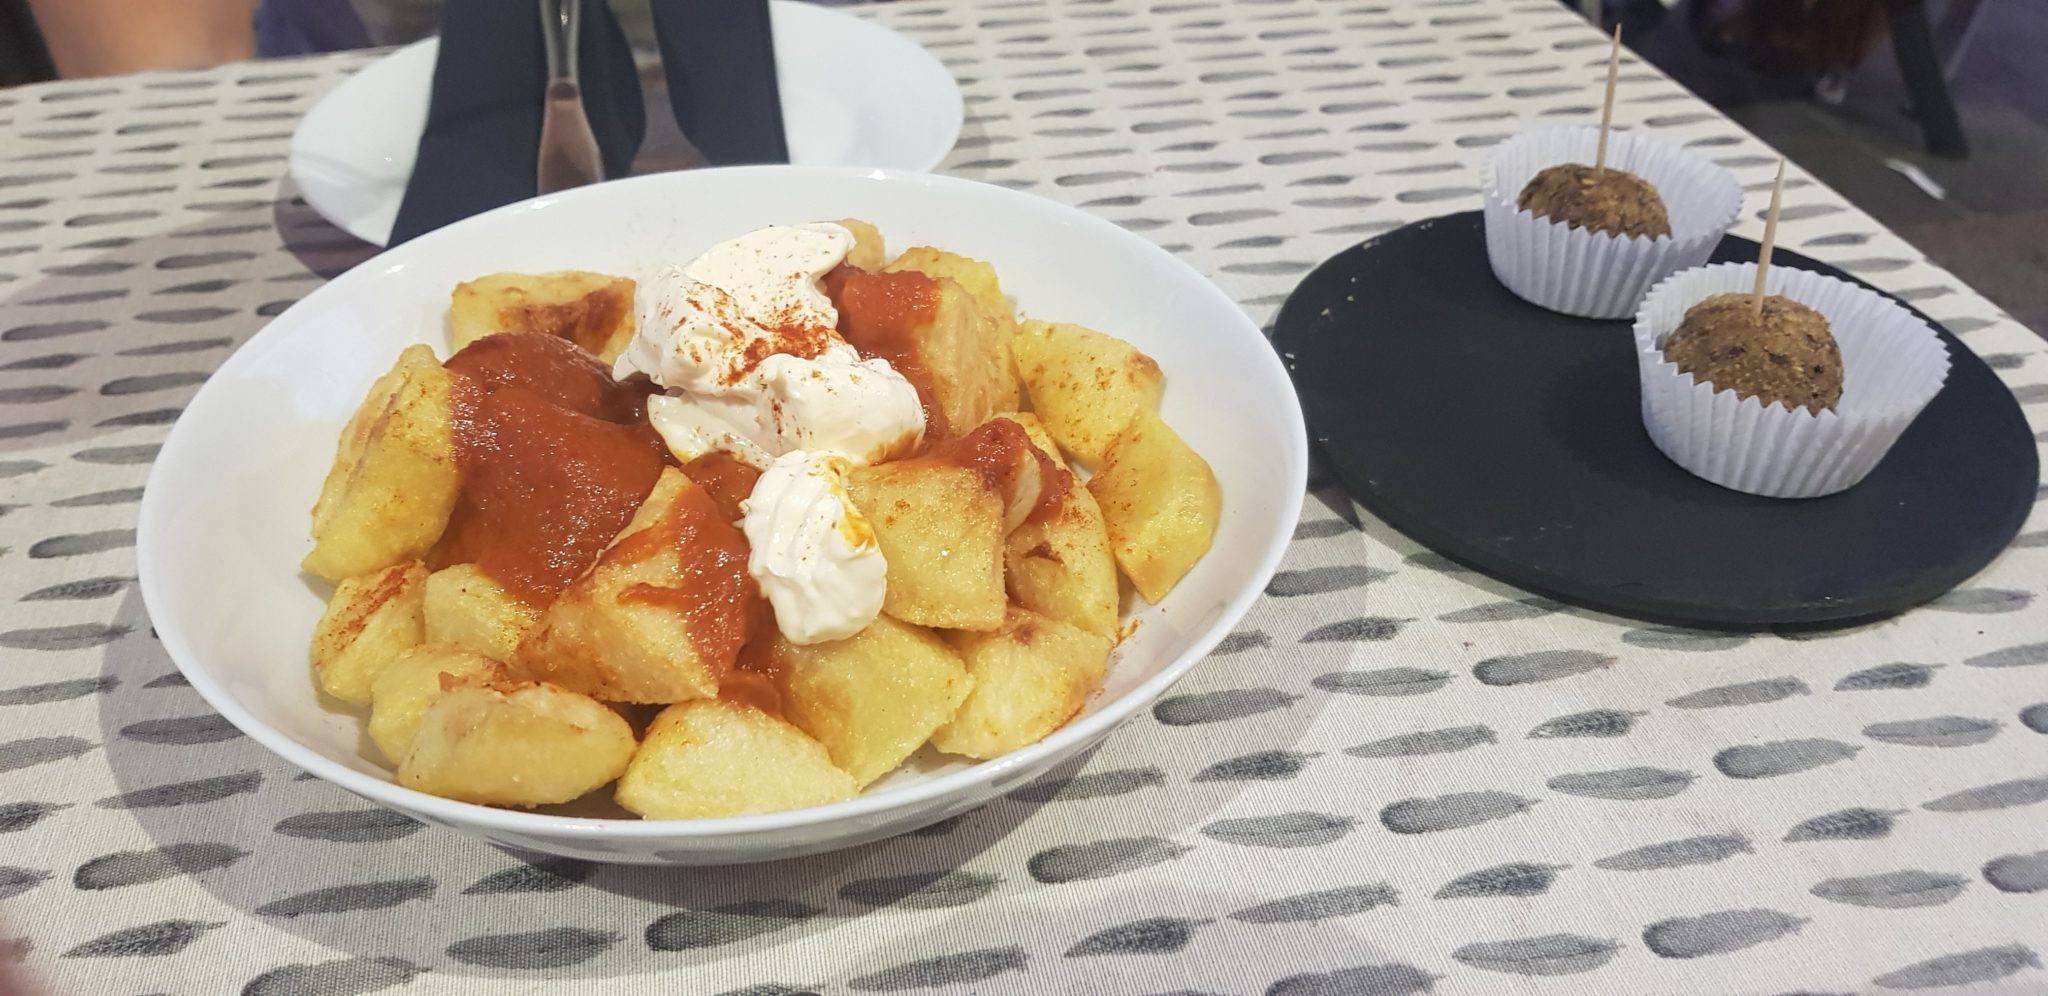 Papas con Bravas and Falafel food on table